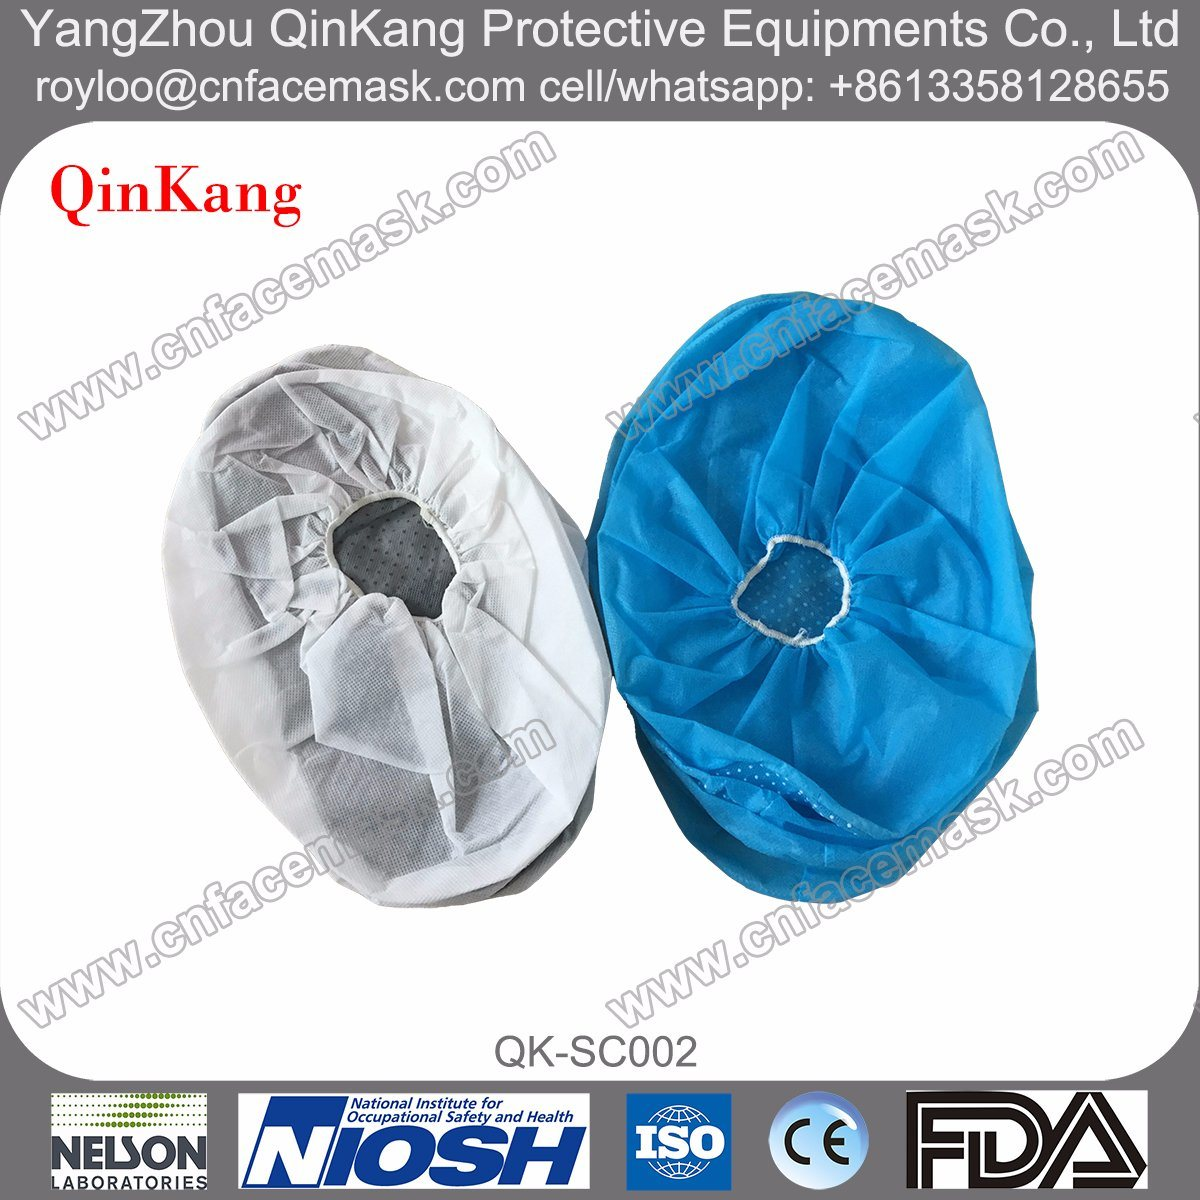 PP Spunbond Nonwoven Anti-Skid Shoe Cover